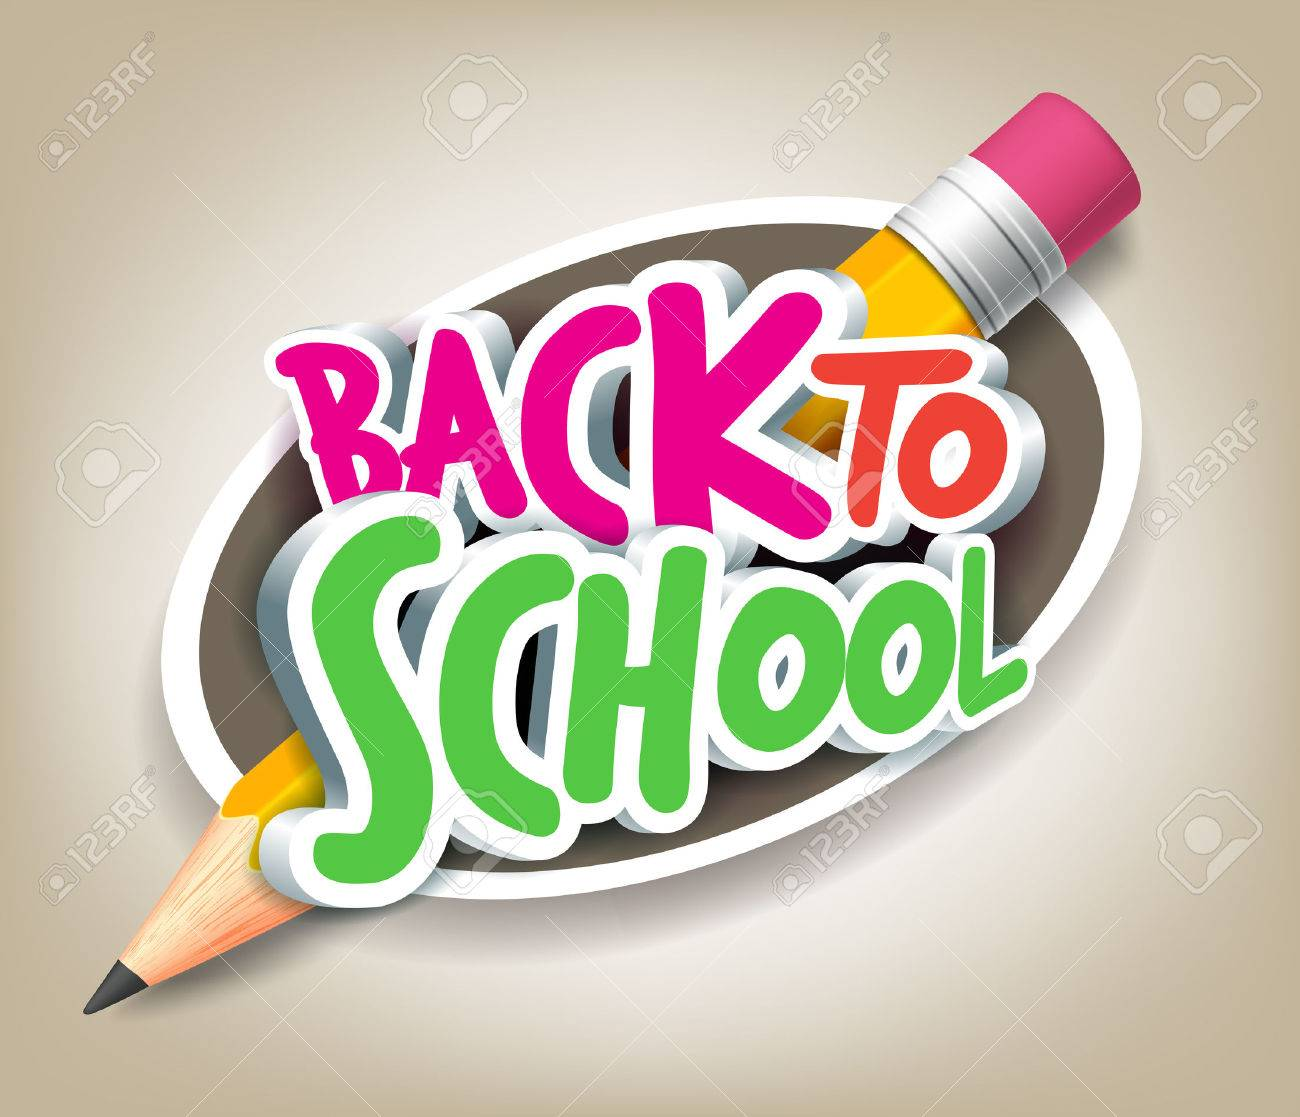 Poster design 3d - Colorful Realistic 3d Back To School Title Texts With Big Pencil In A Circle For Poster